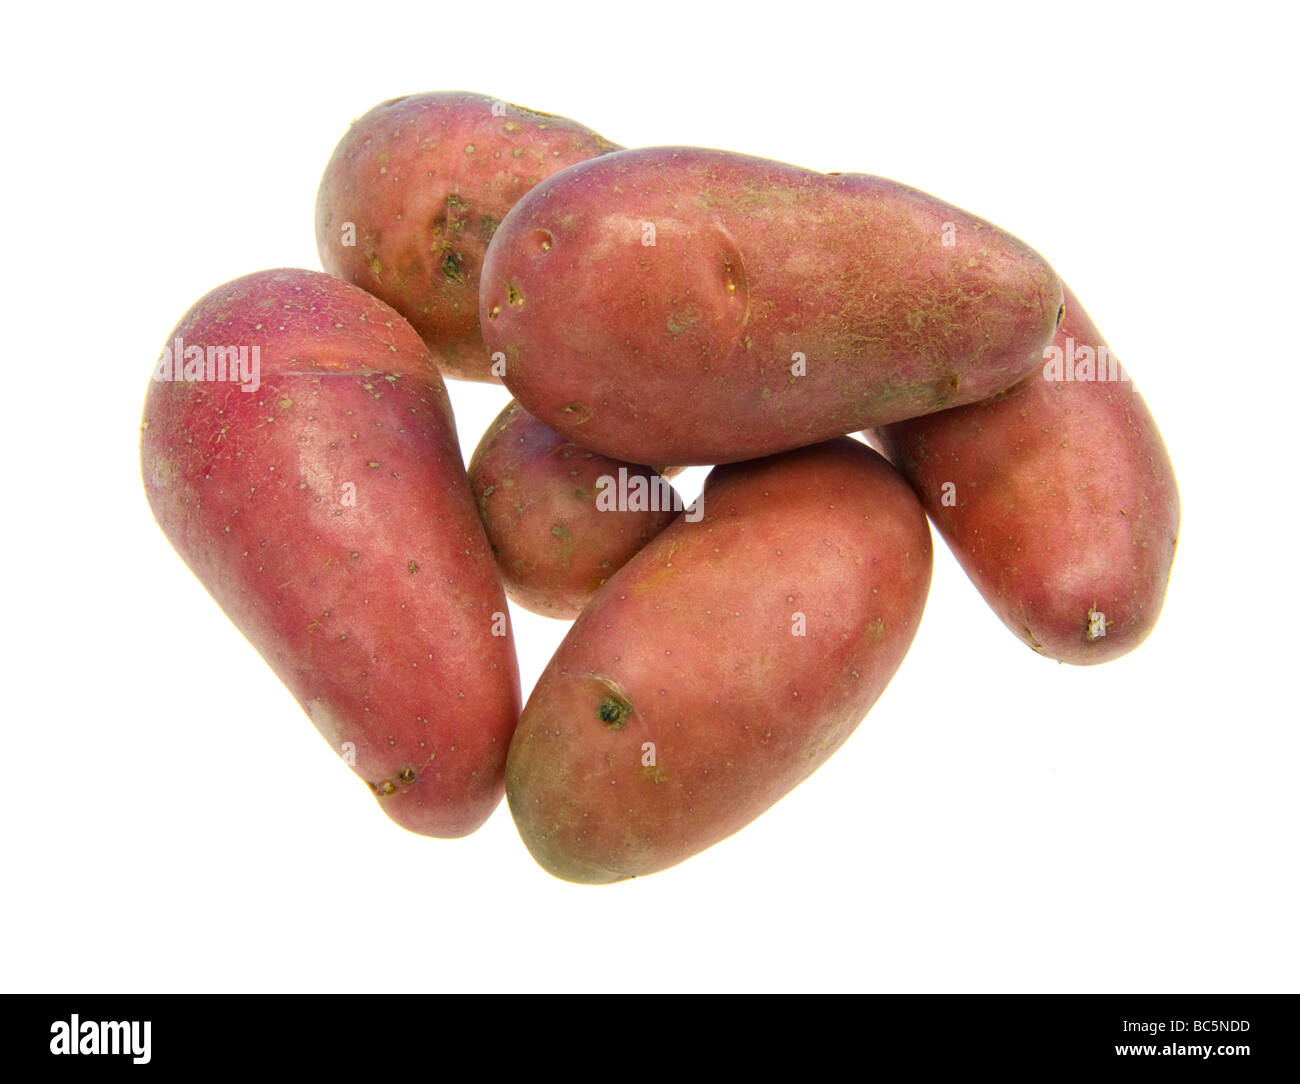 red potato french new sort of potatoes of france FOOD curious cultivation culturev cultivate grow grower color cut - Stock Image